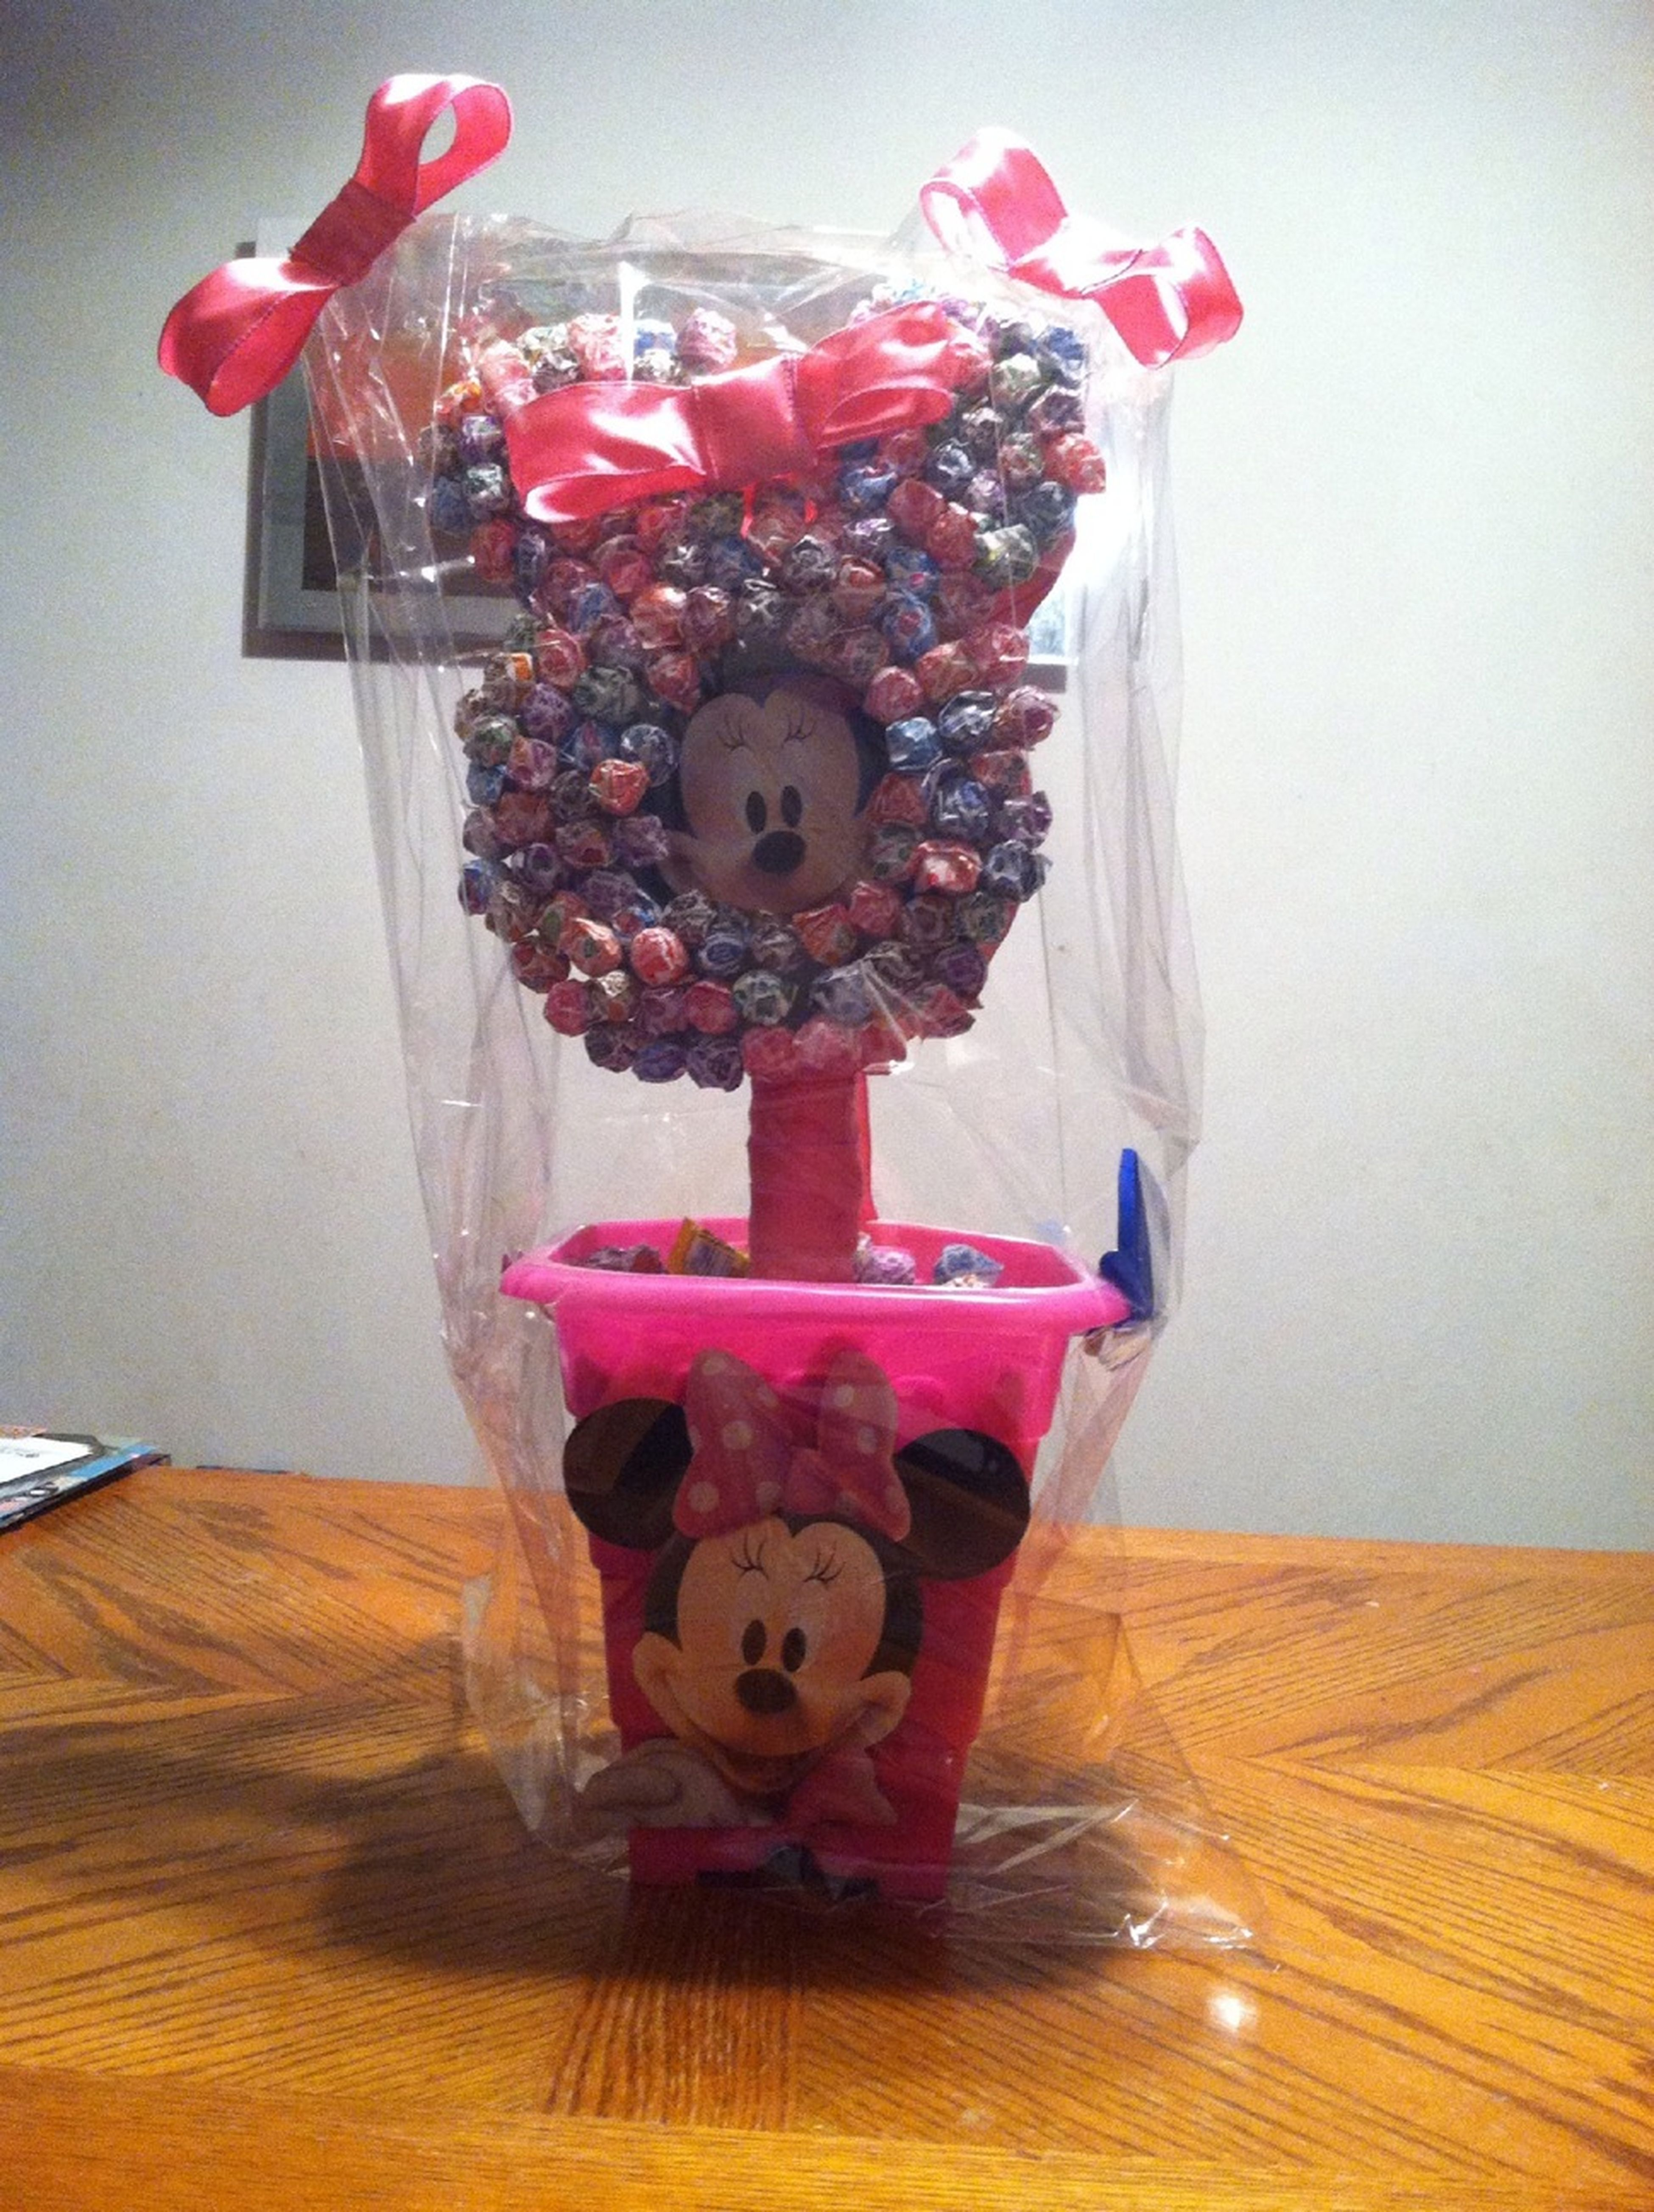 The Basket Me Nd My Mom Made Yesterday ❤